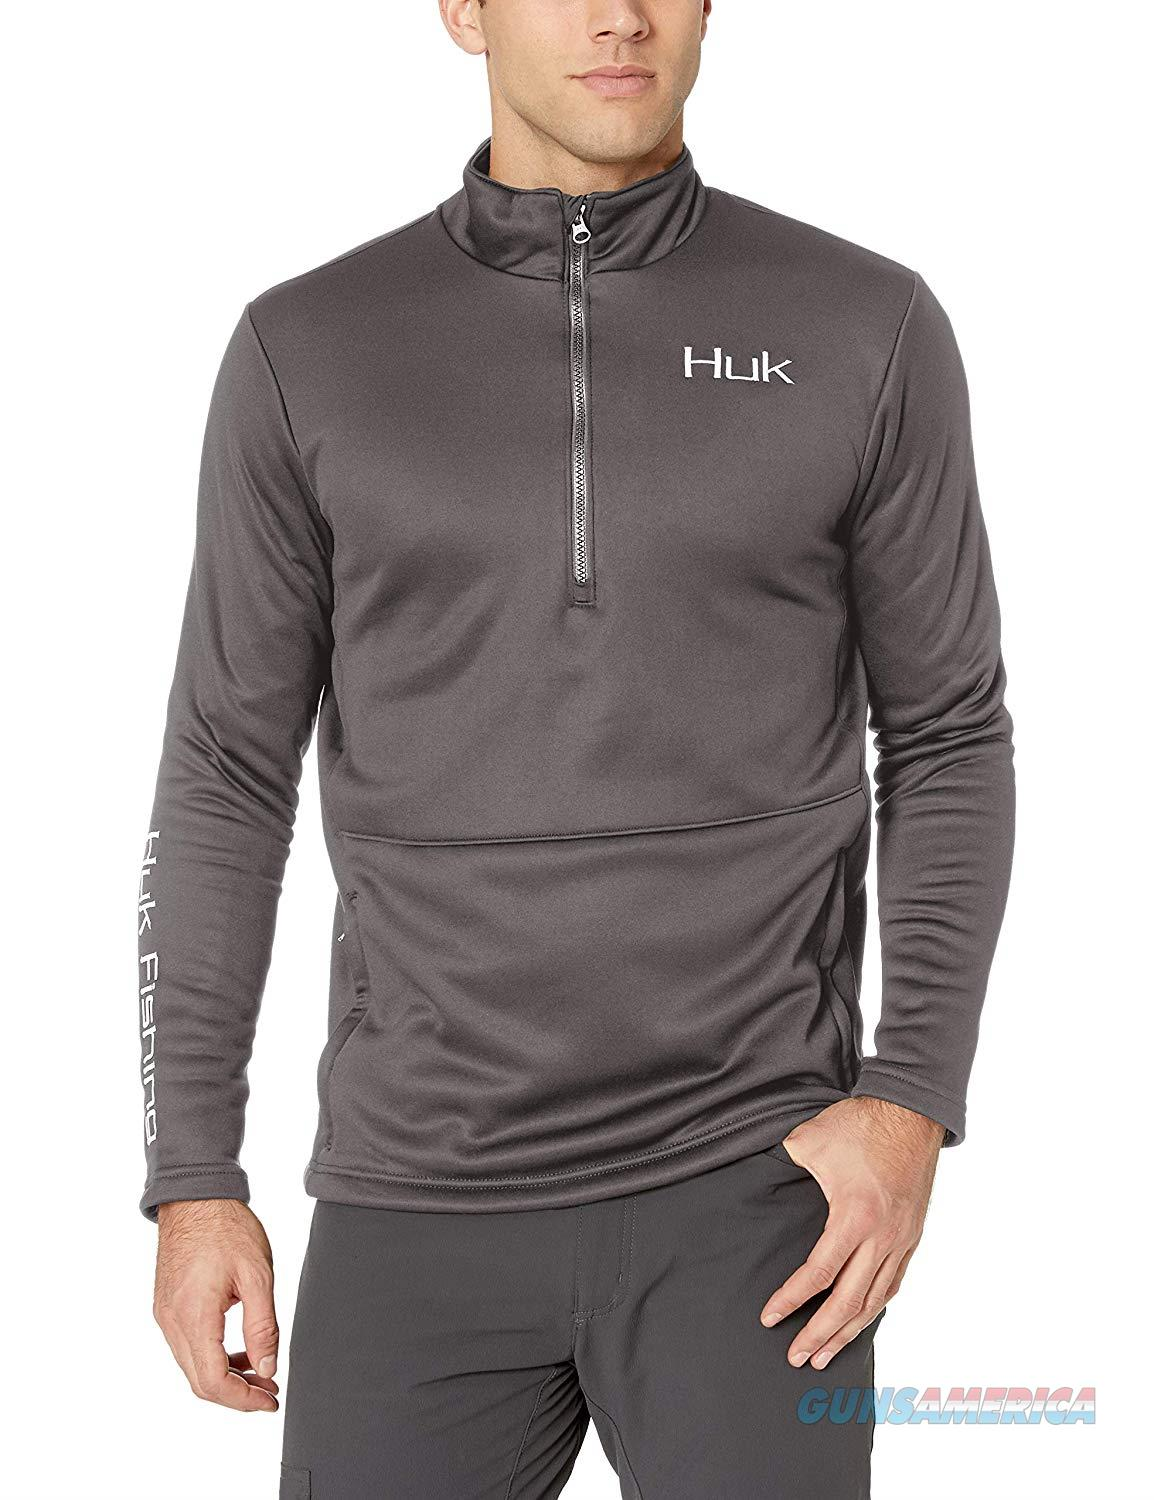 Huk Tidewater 1/4 Zip MD Grey  Non-Guns > Hunting Clothing and Equipment > Clothing > Shirts